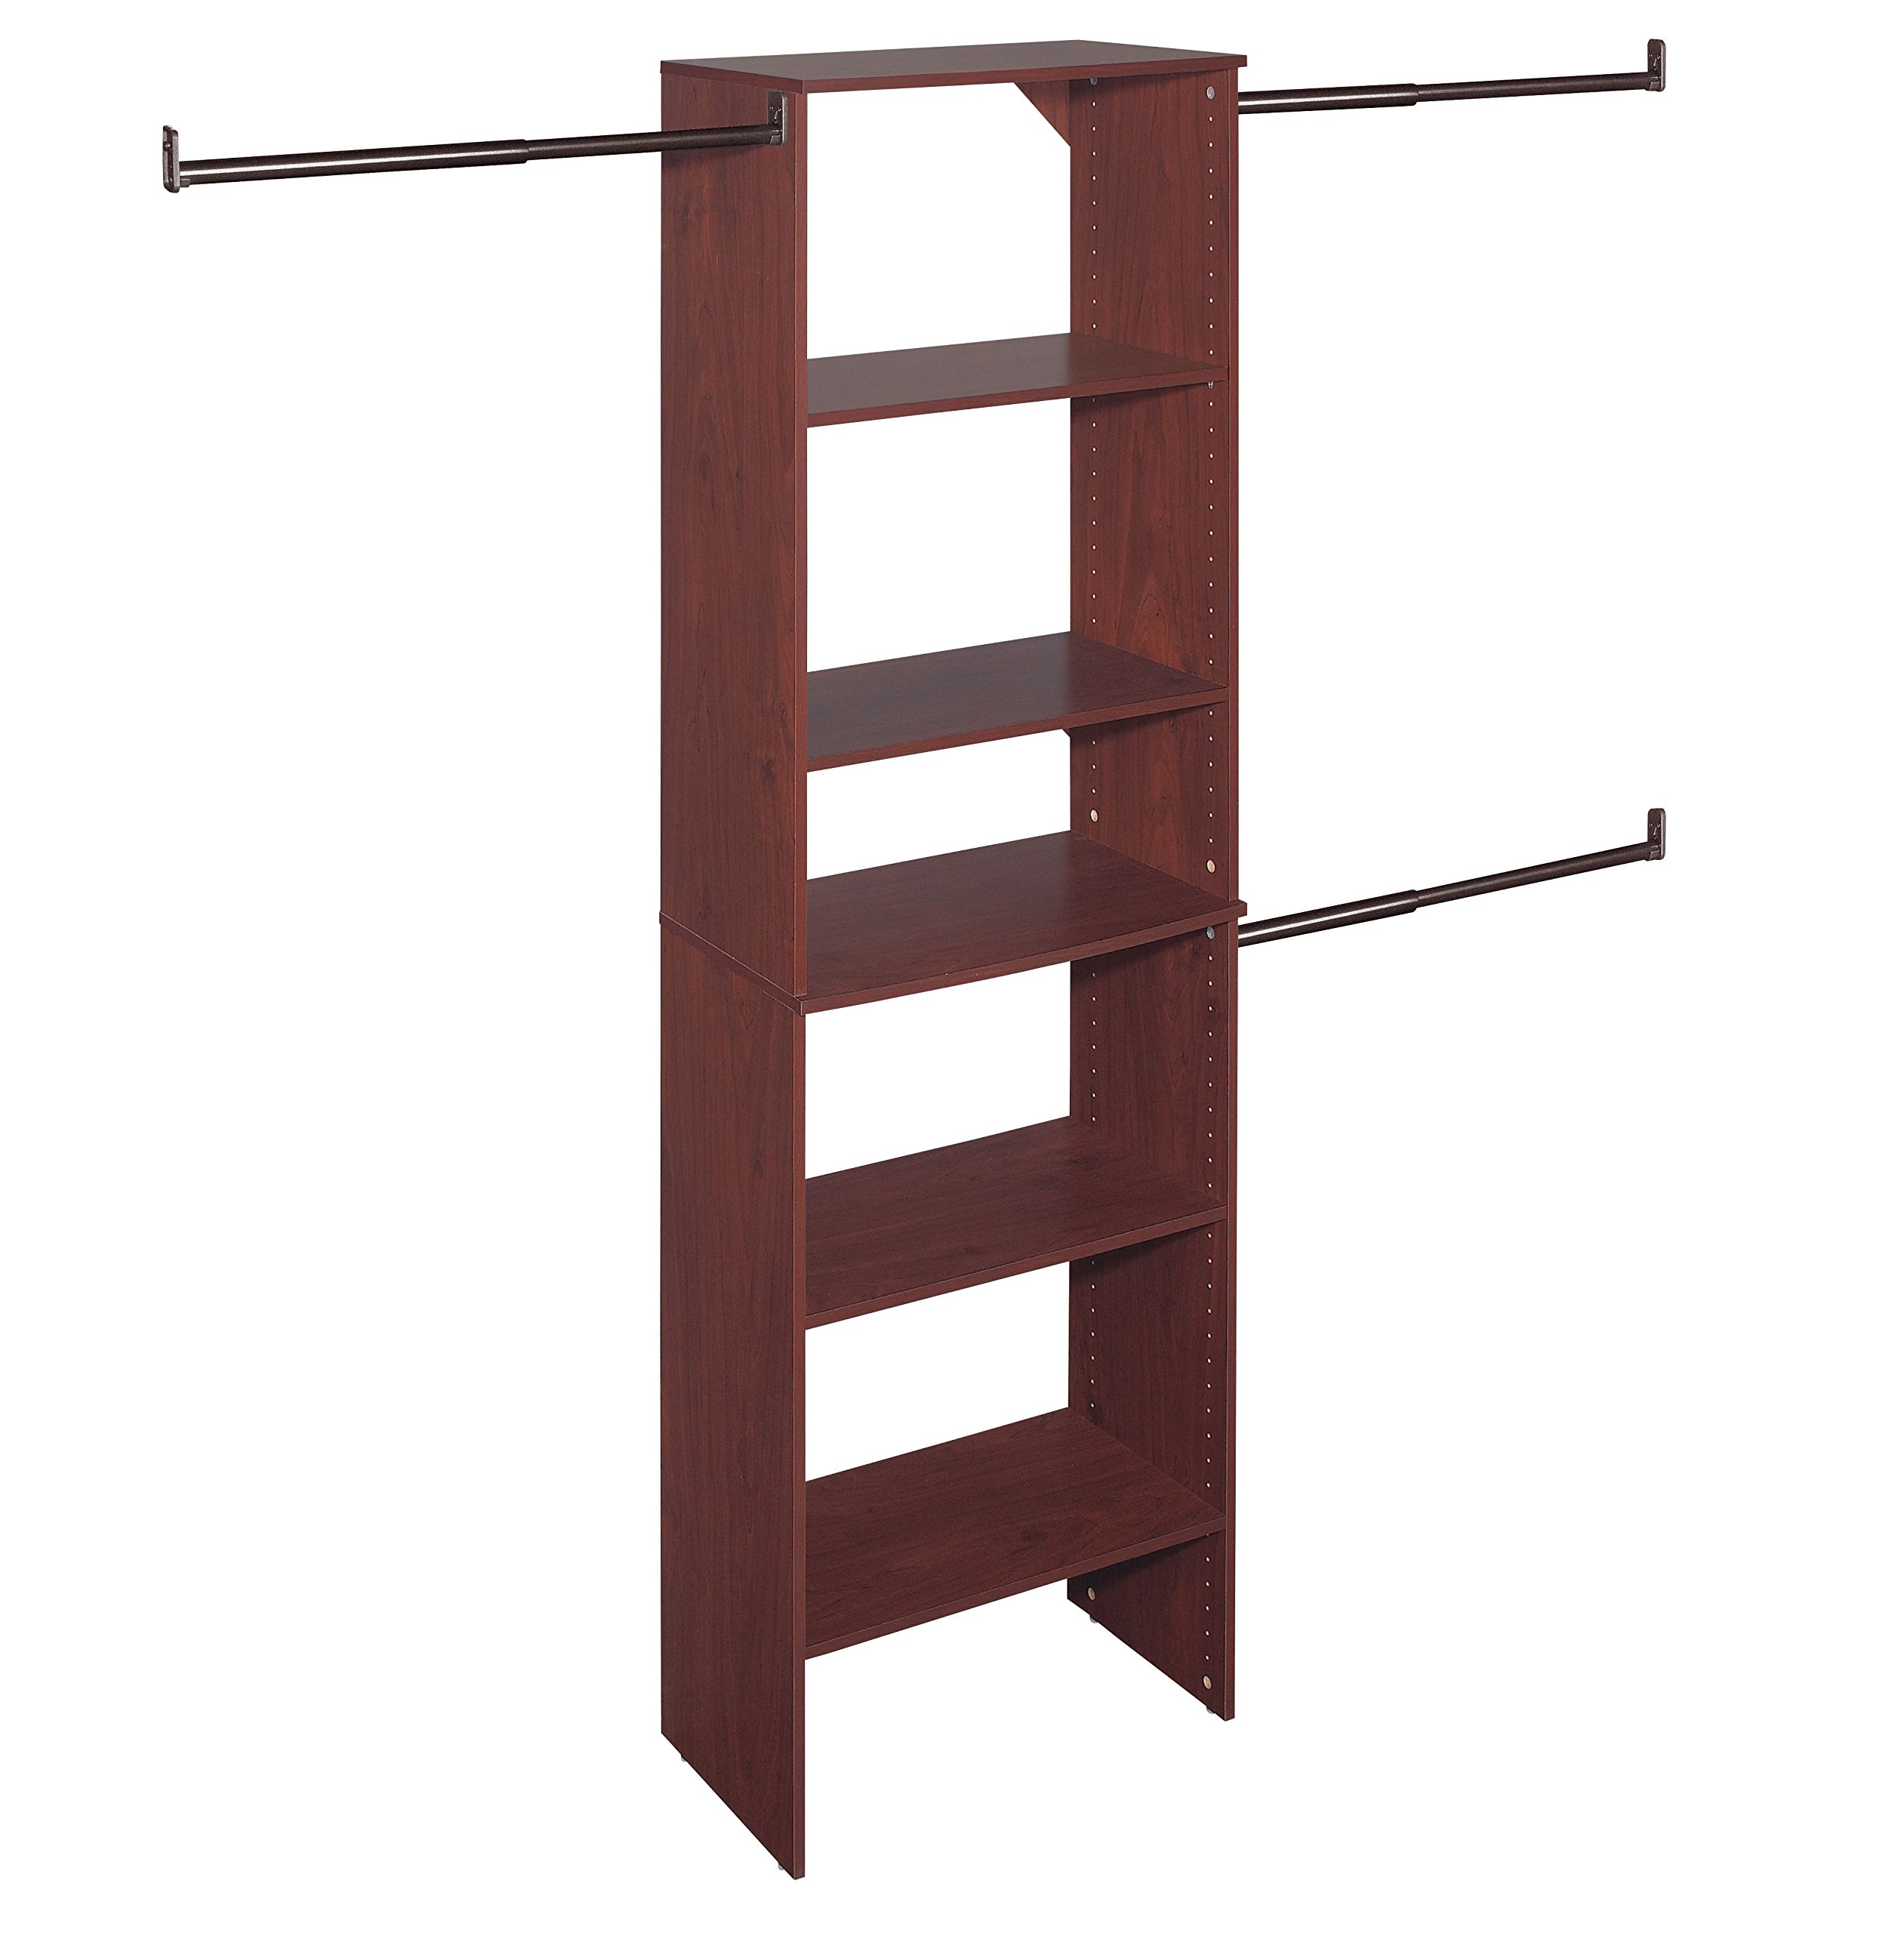 ClosetMaid 8895 SuiteSymphony 25-Inch Starter Tower Kit, Cherry